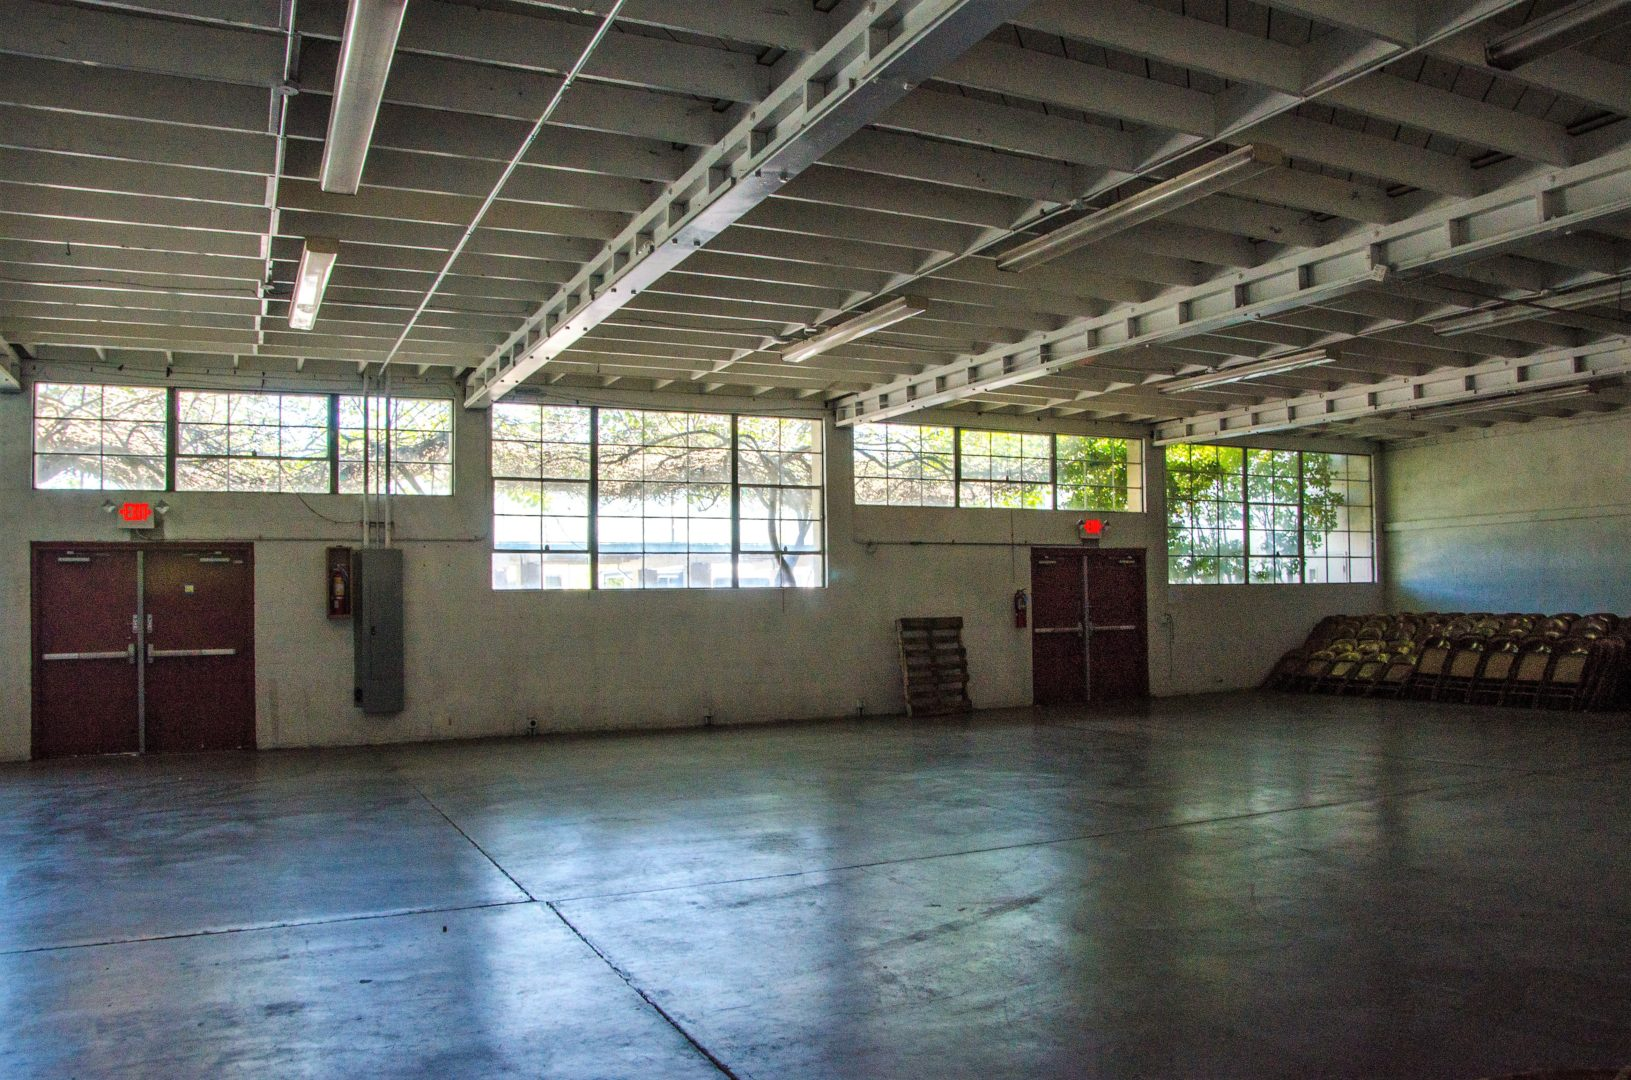 Commercial Room Facilities Available for Rent